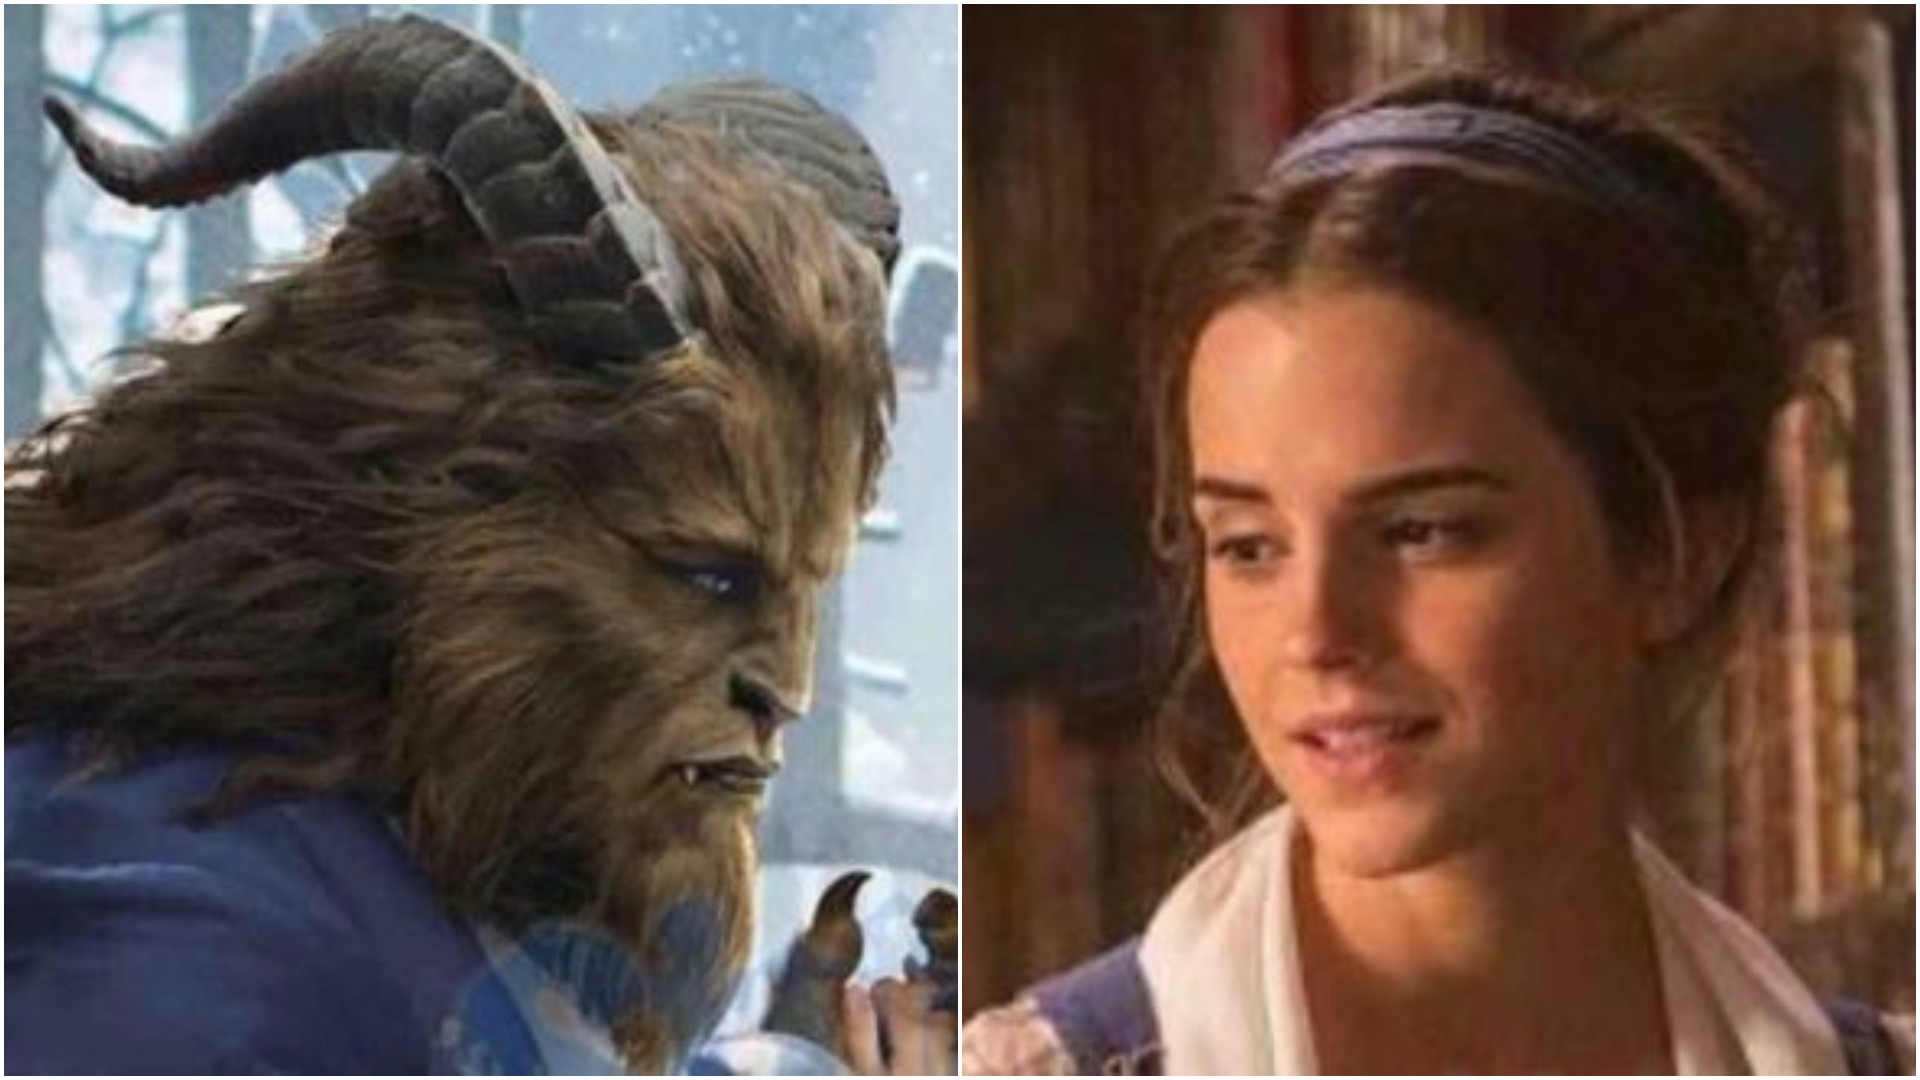 New Beauty And The Beast pics show Emma Watson dancing with her hairy friend in Belle's famous dress